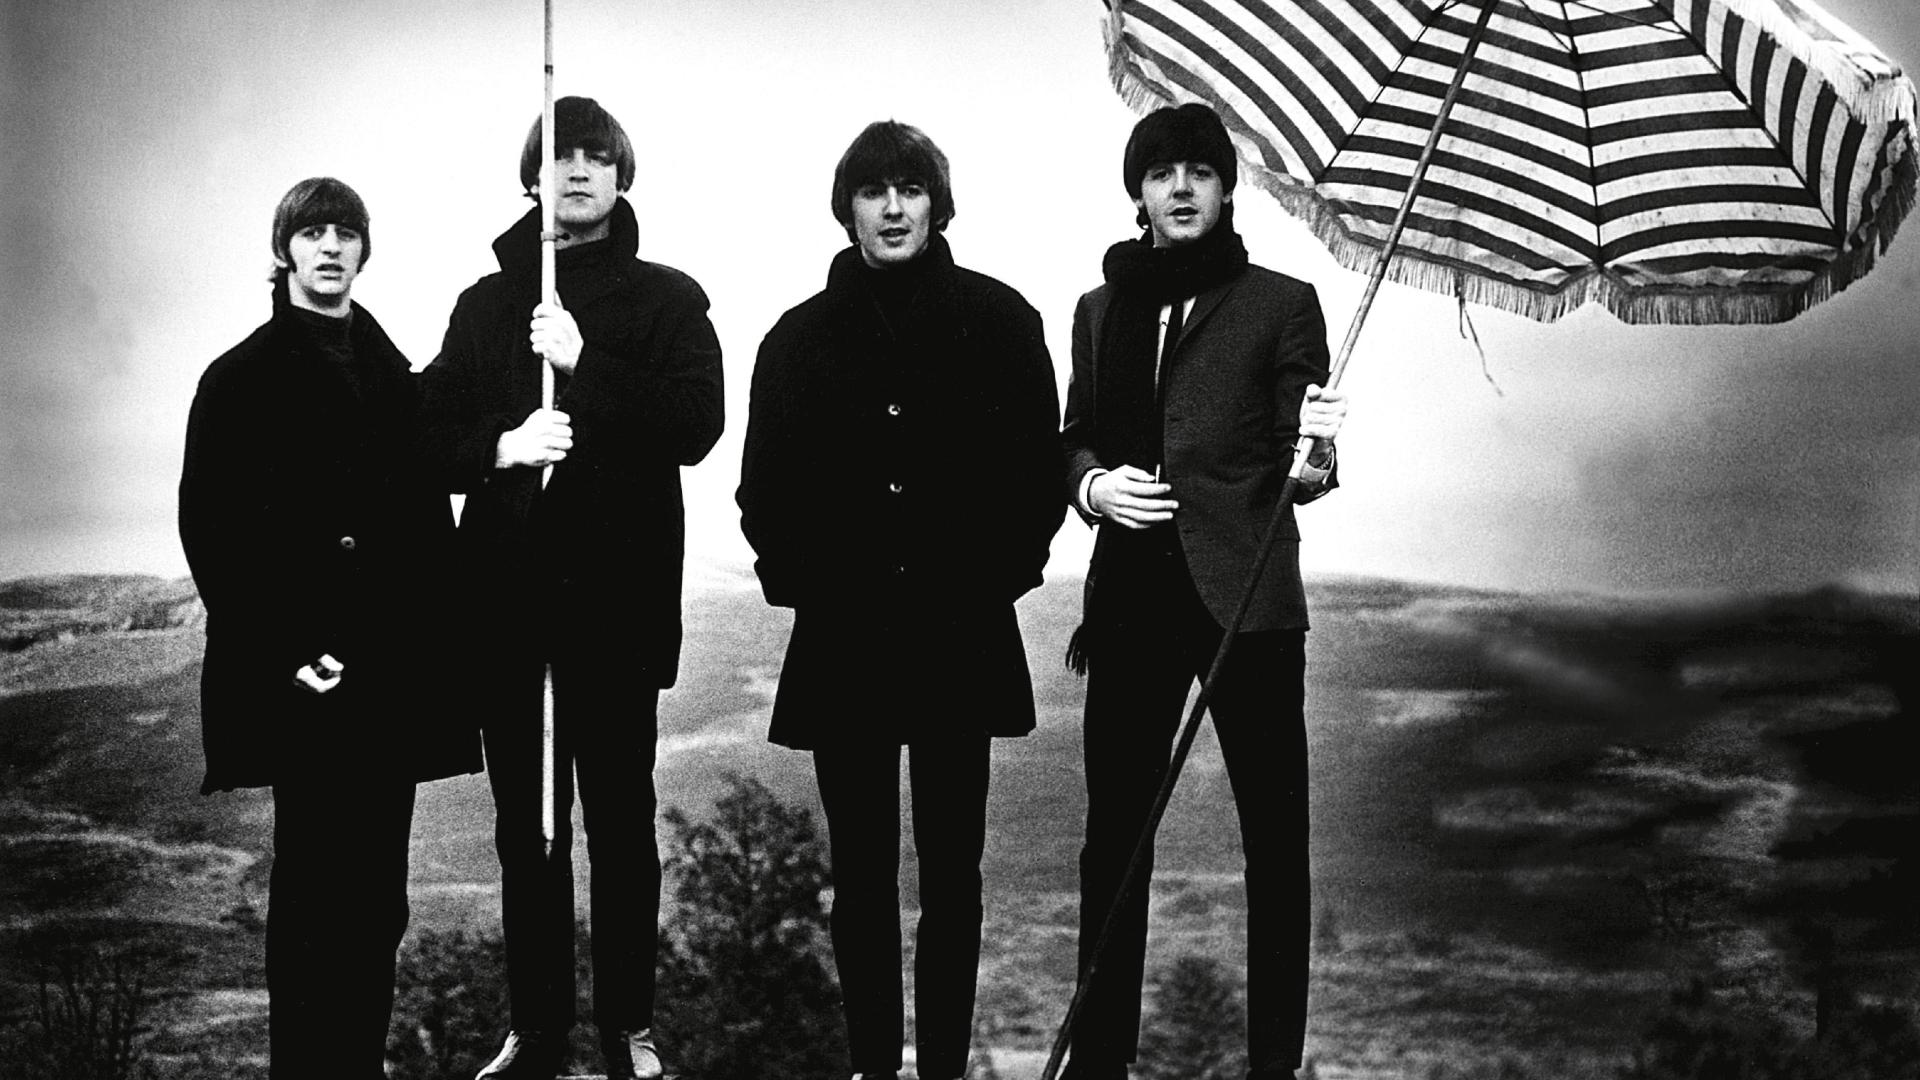 The Beatles Wallpaper HD